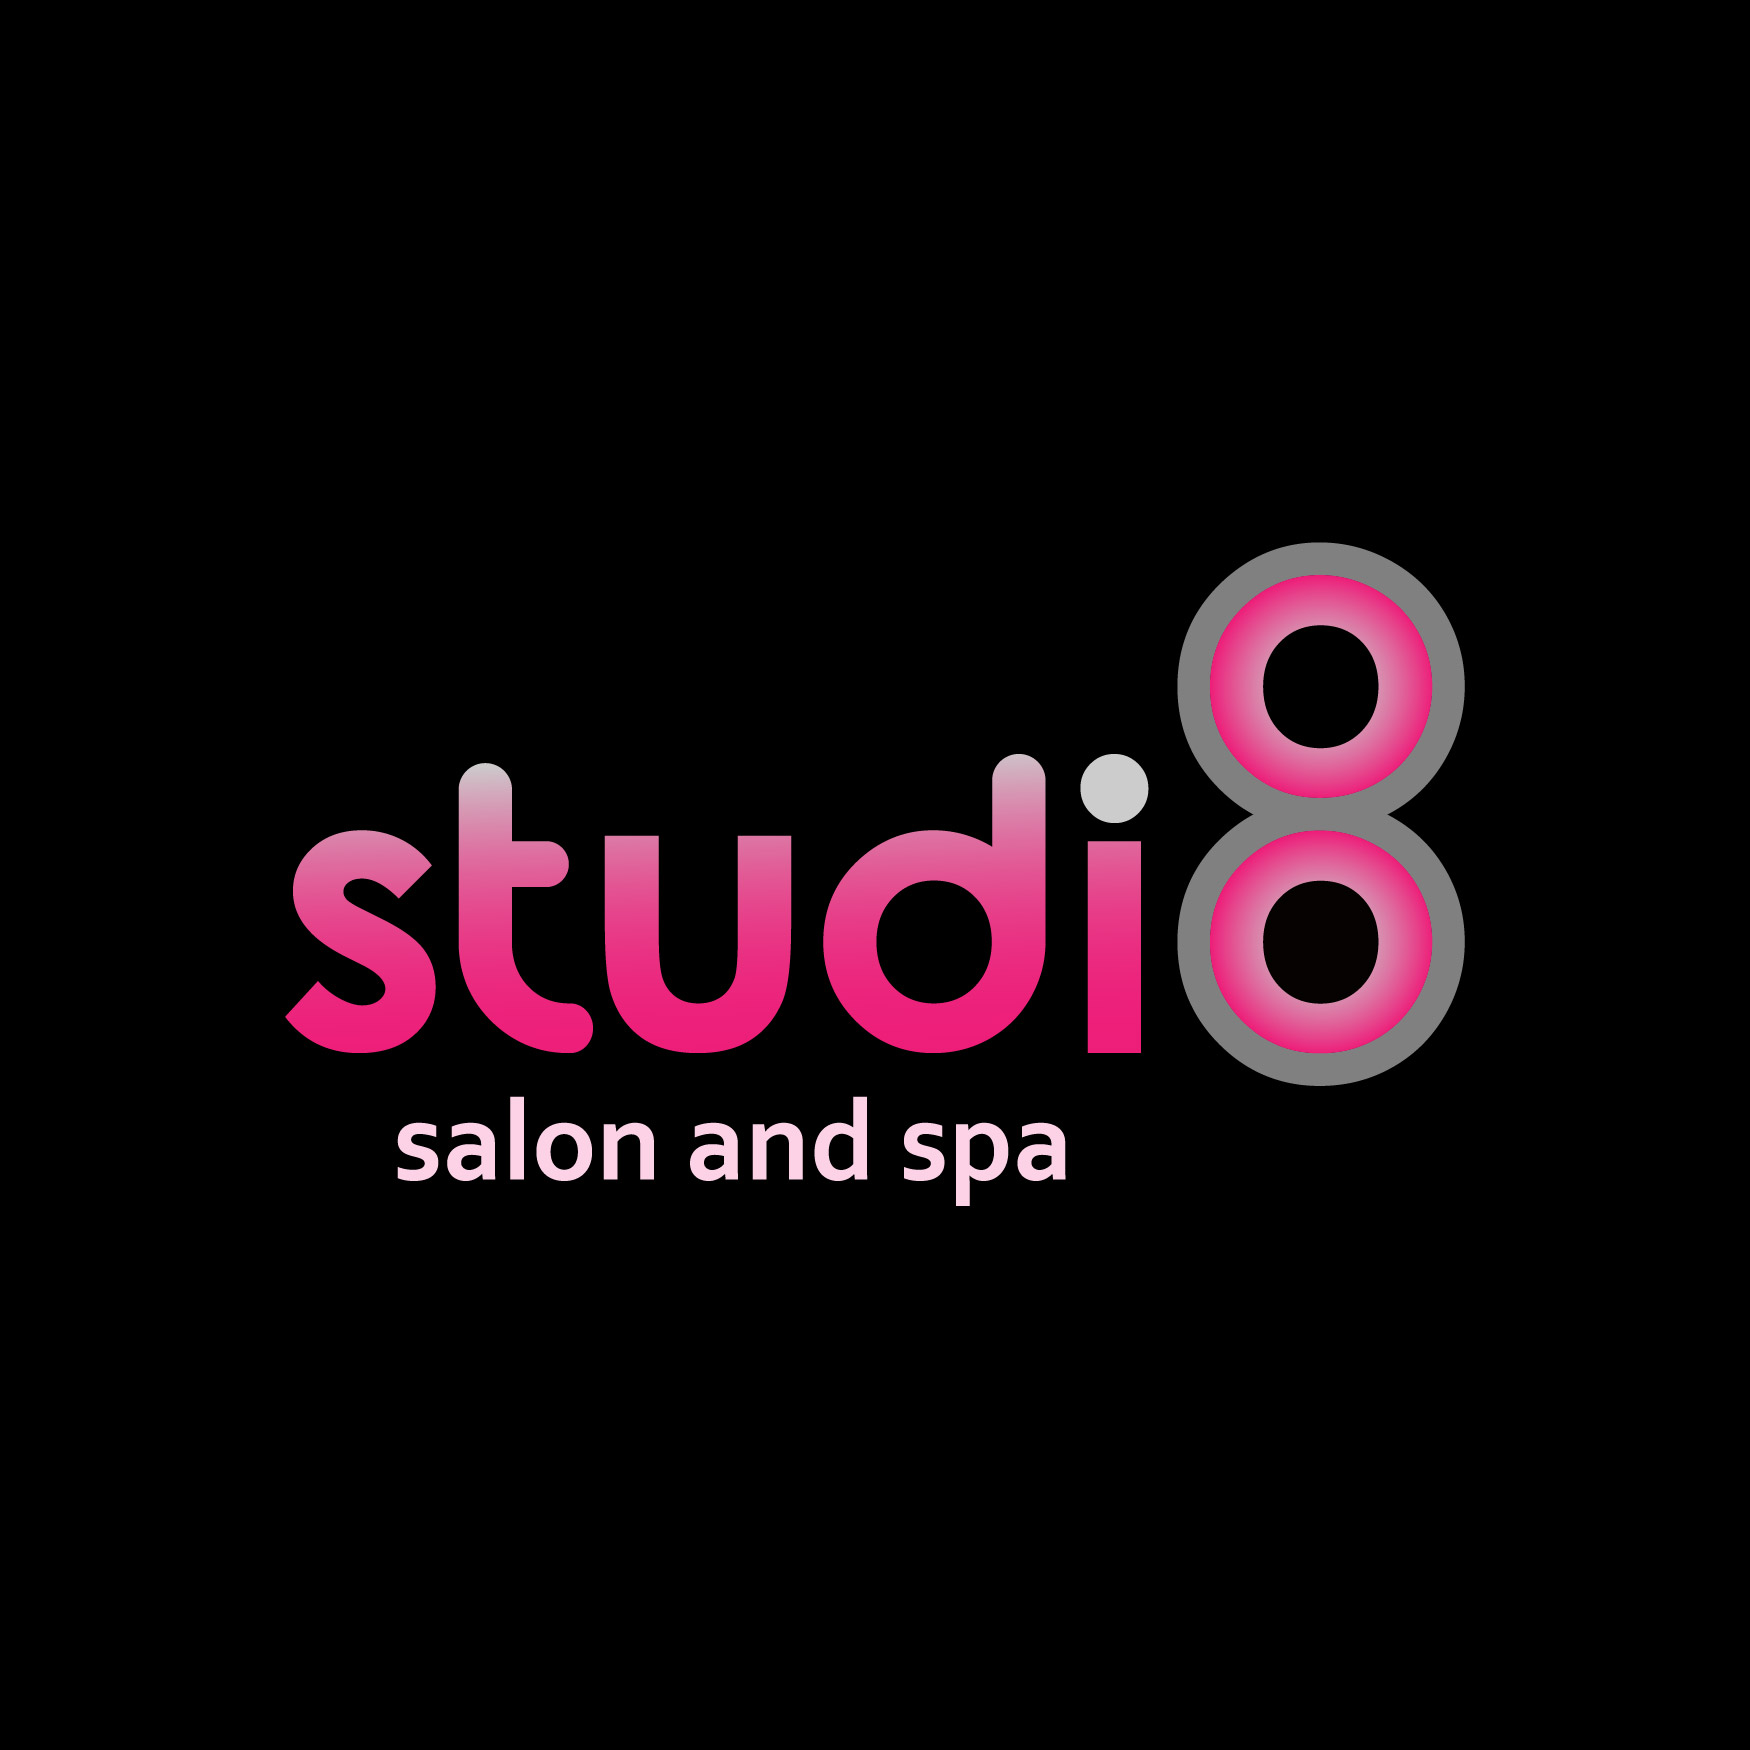 Logo Design by Cross Desain - Entry No. 106 in the Logo Design Contest Captivating Logo Design for studio eight salon & spa.